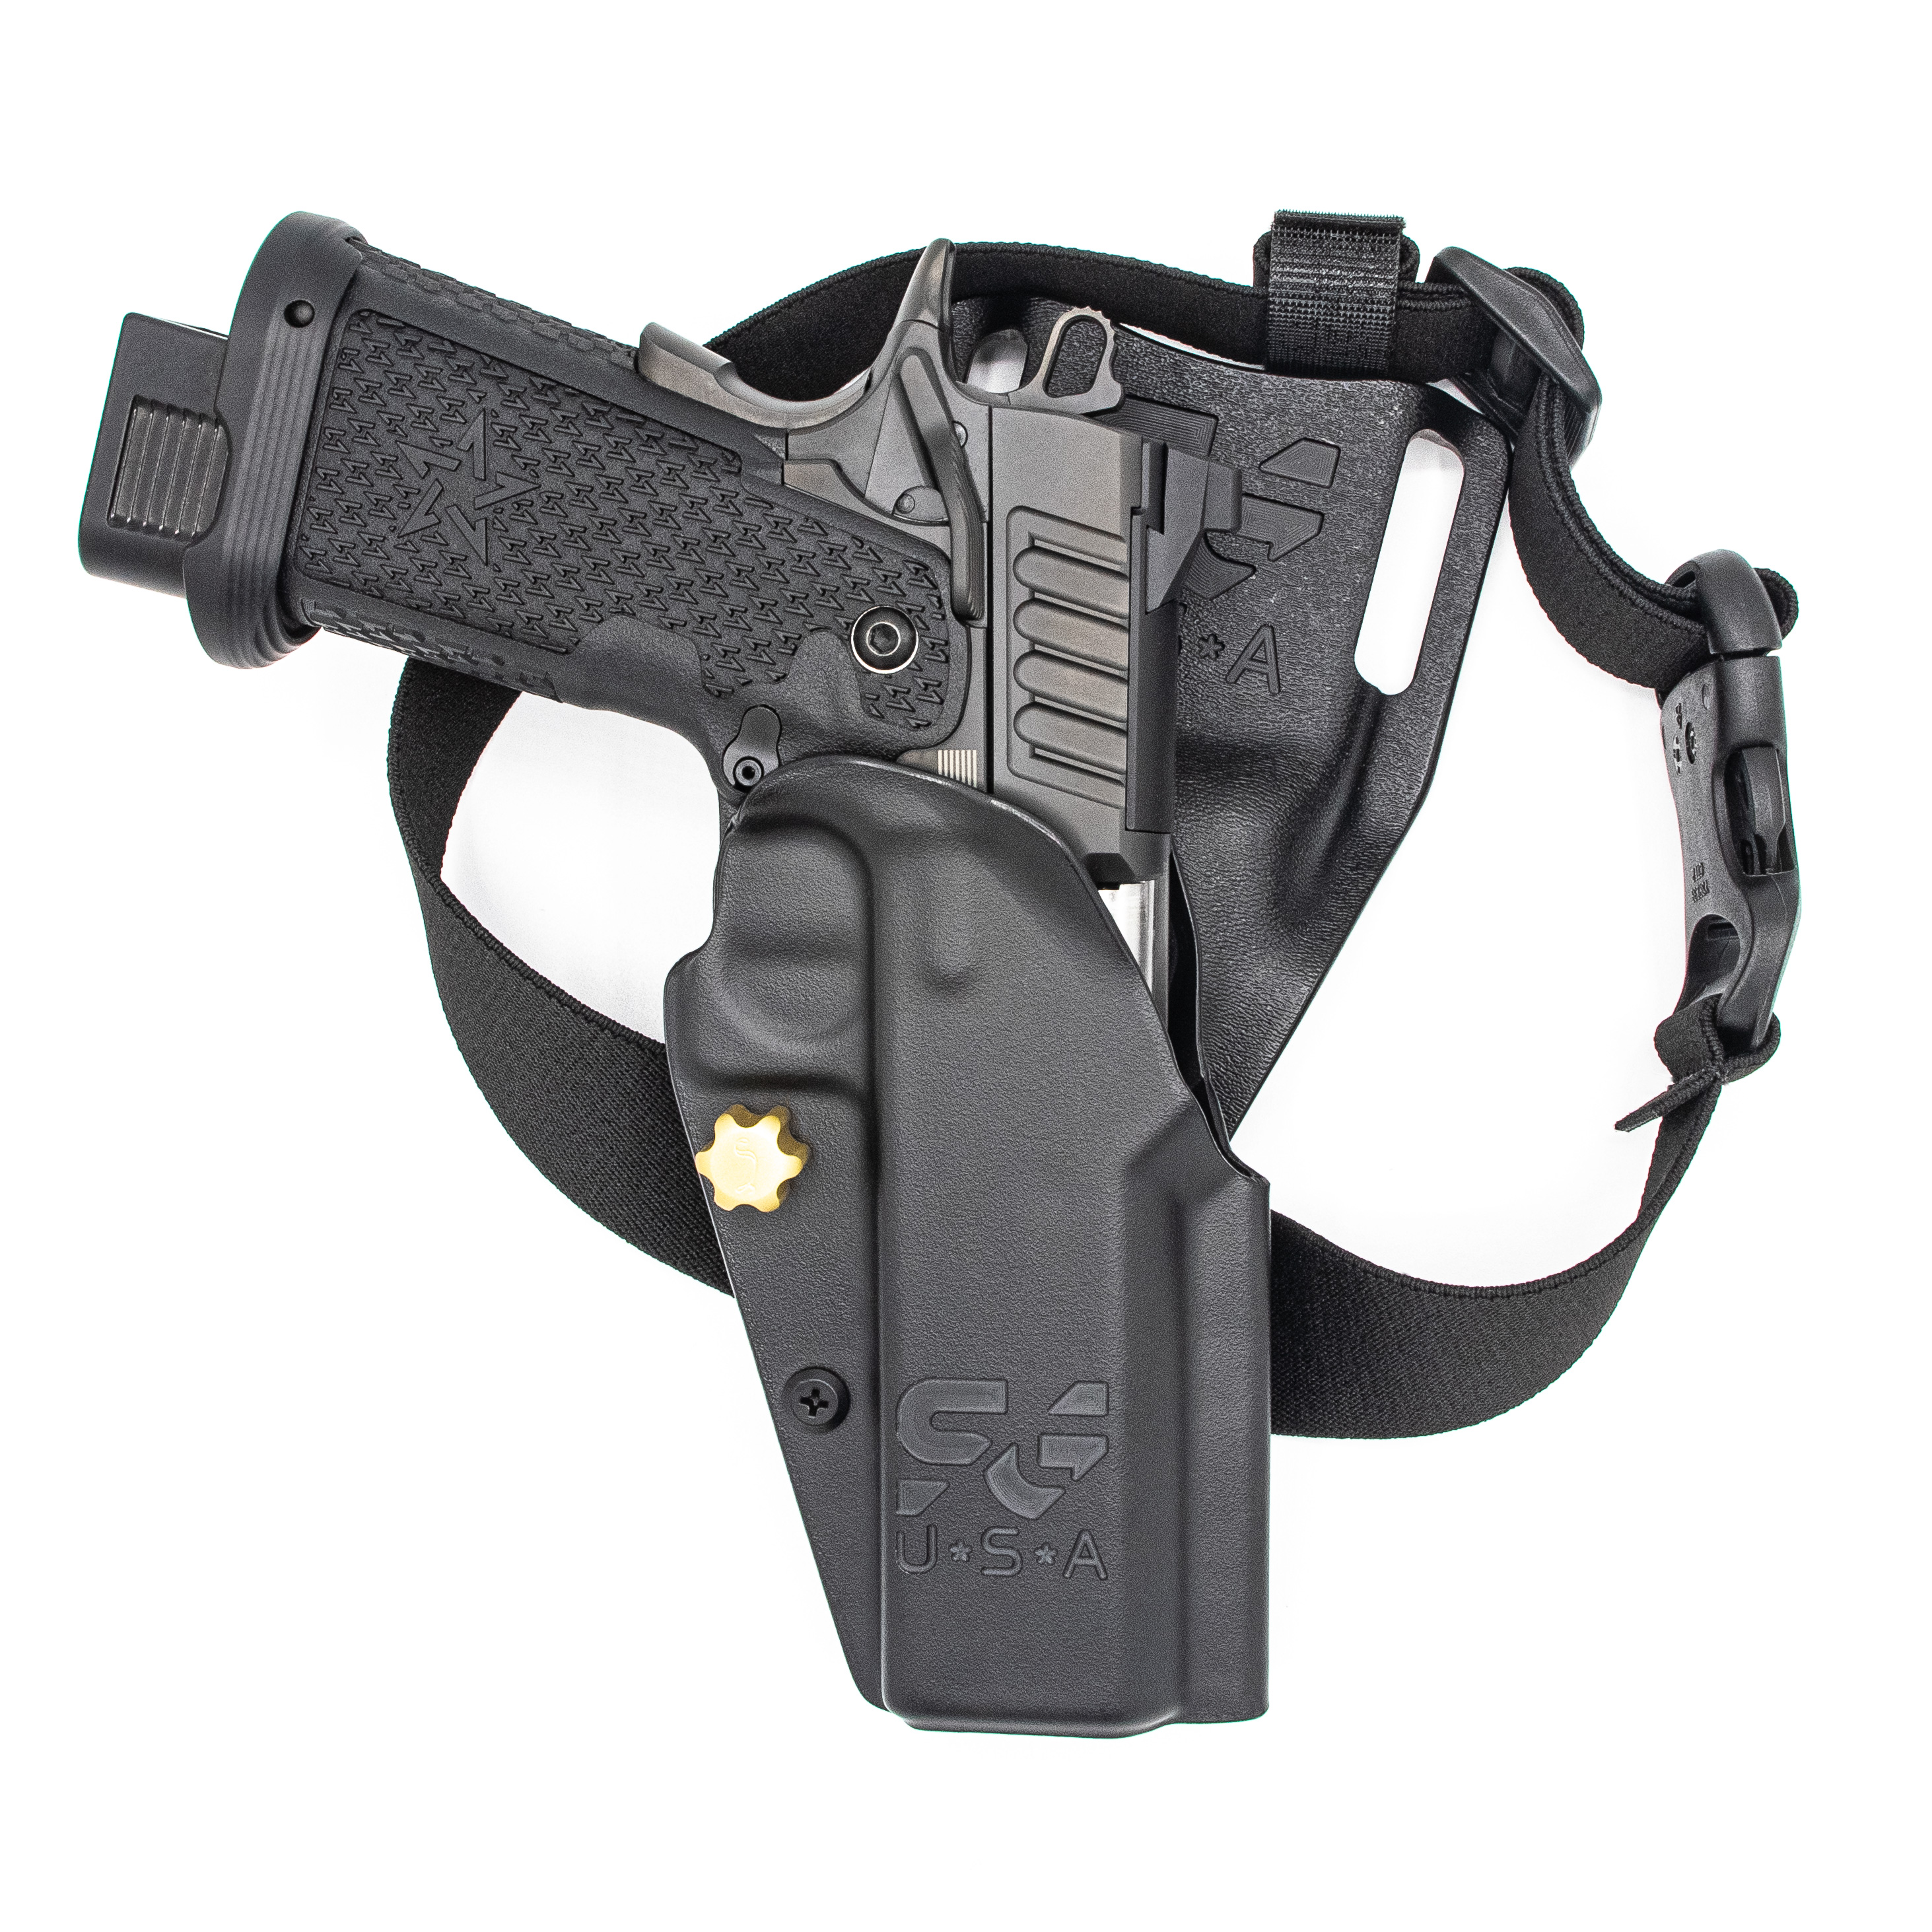 stealthgearusa-sgx-competition-holster-staccato-2011-20210423-holstered-hero-shot.jpg